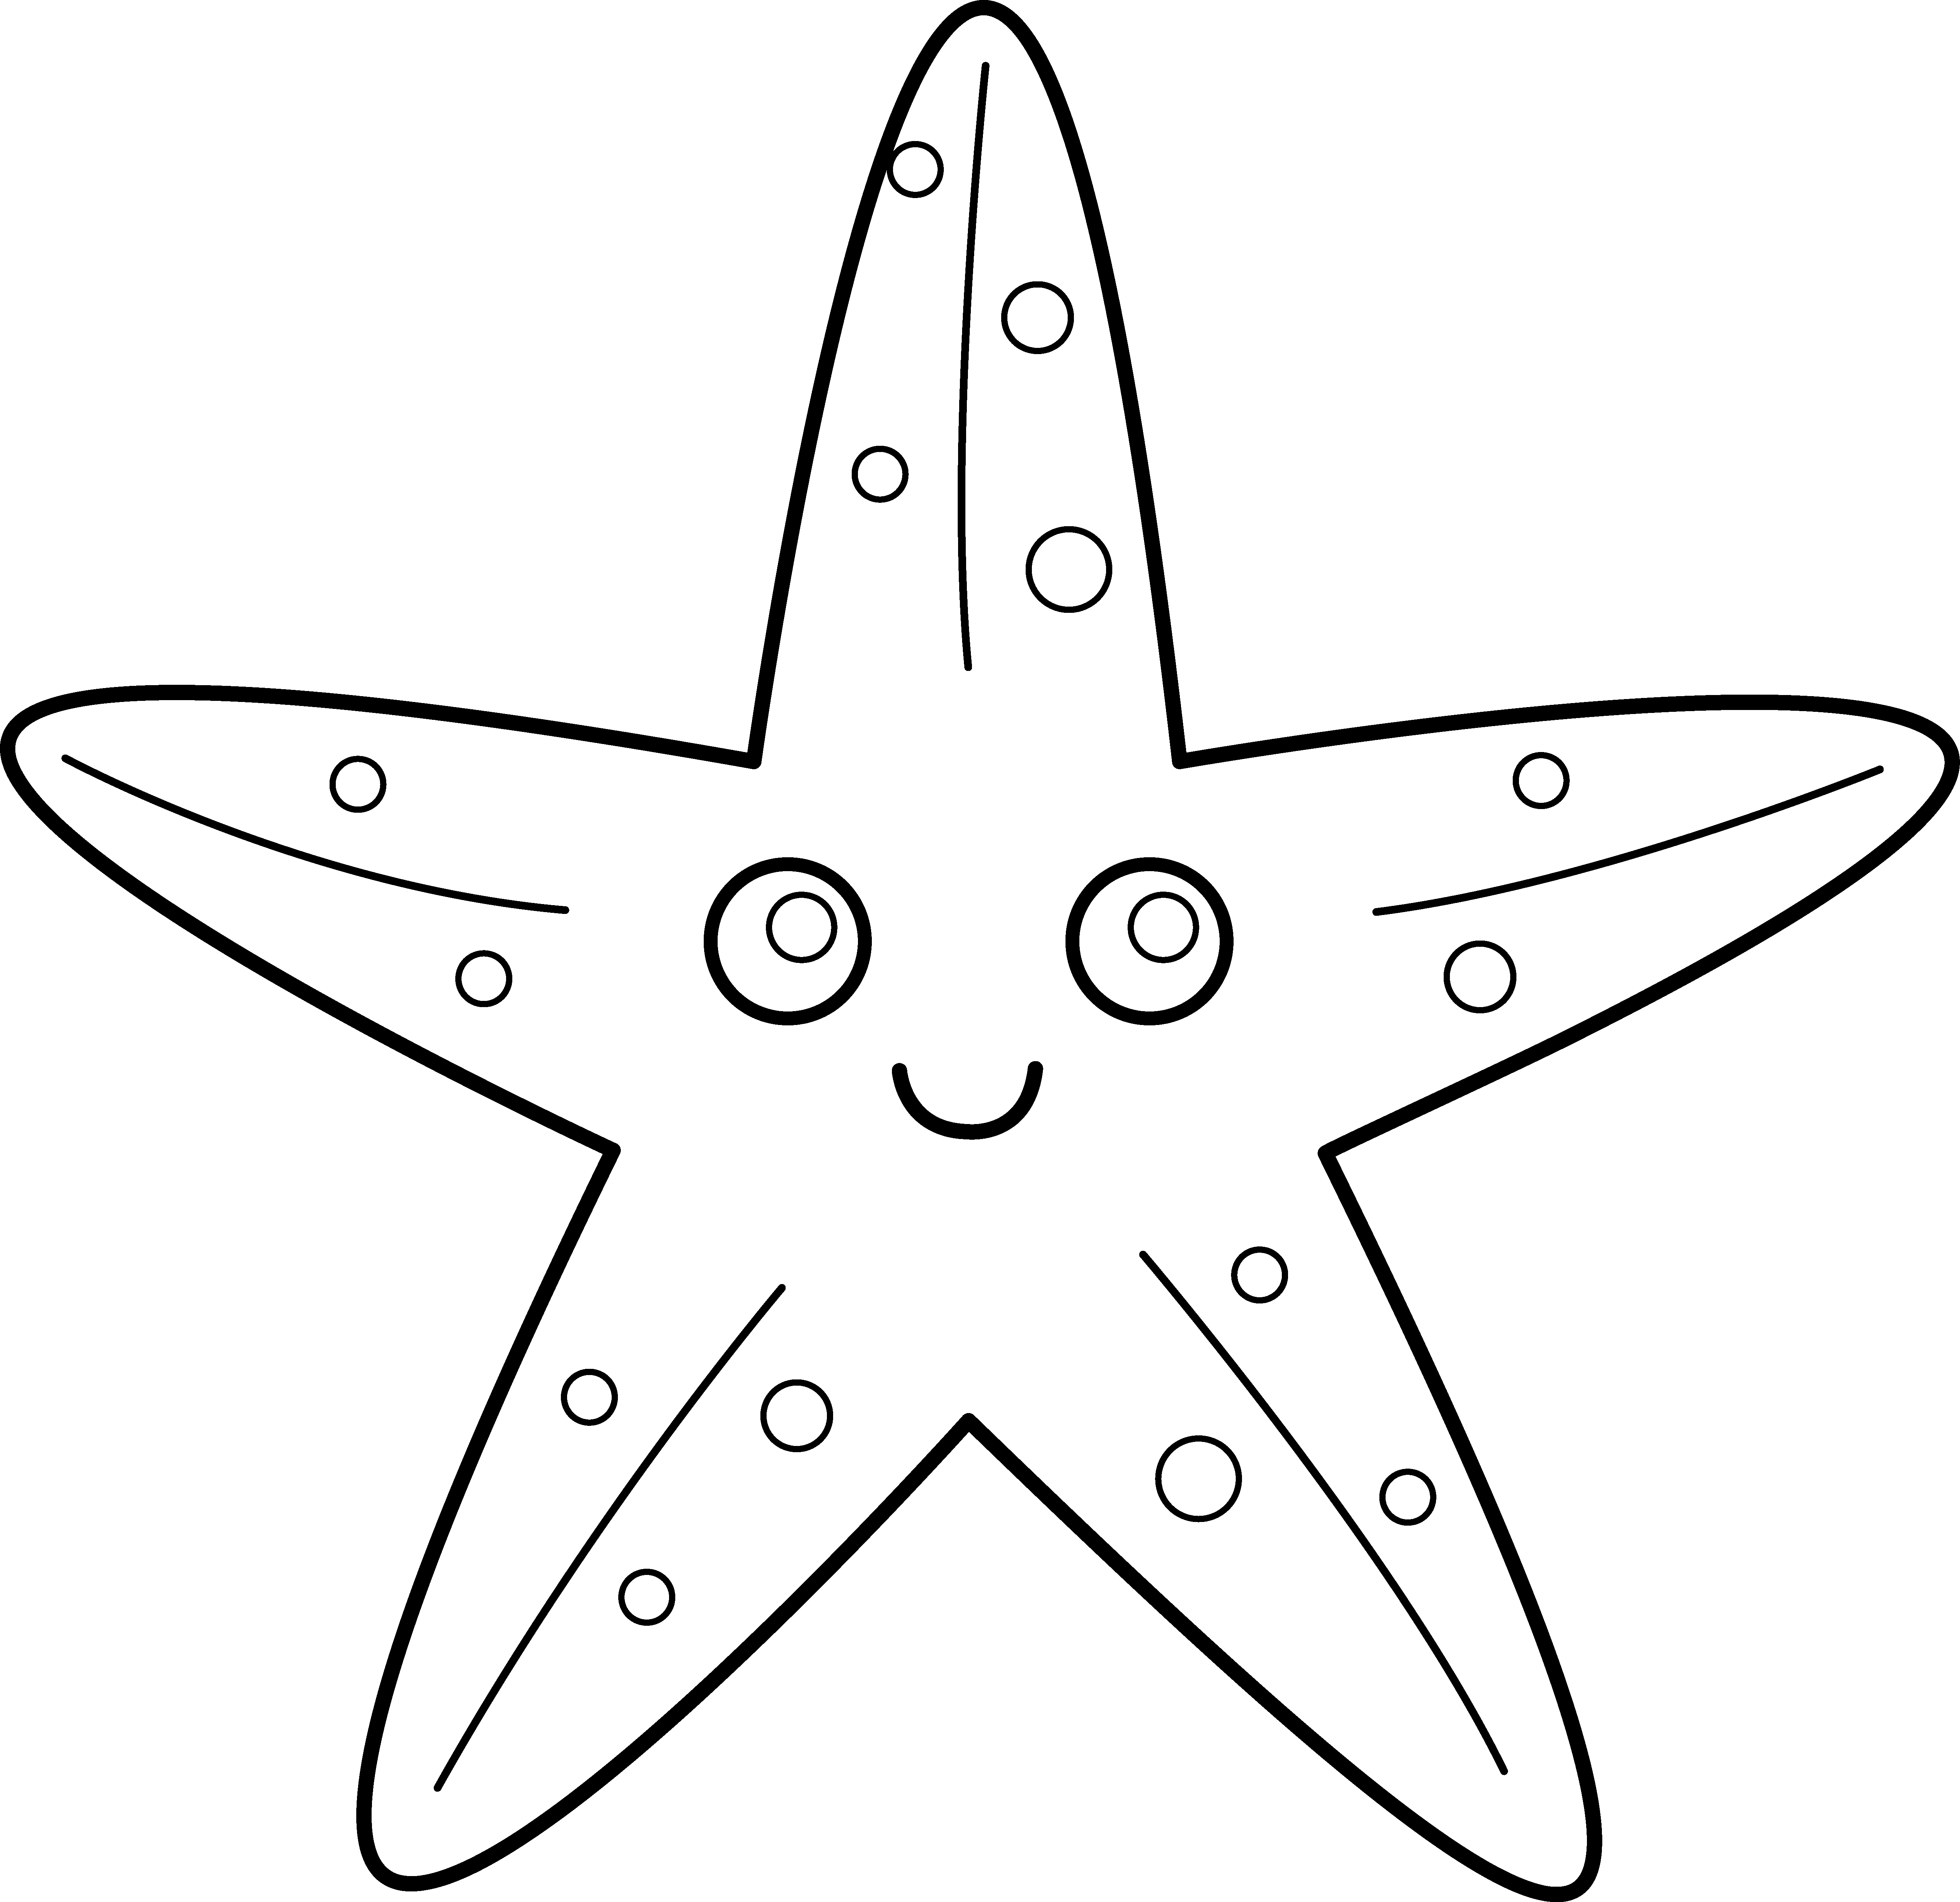 banner royalty free download Starfish for applique daycare. Seahorse clipart black and white